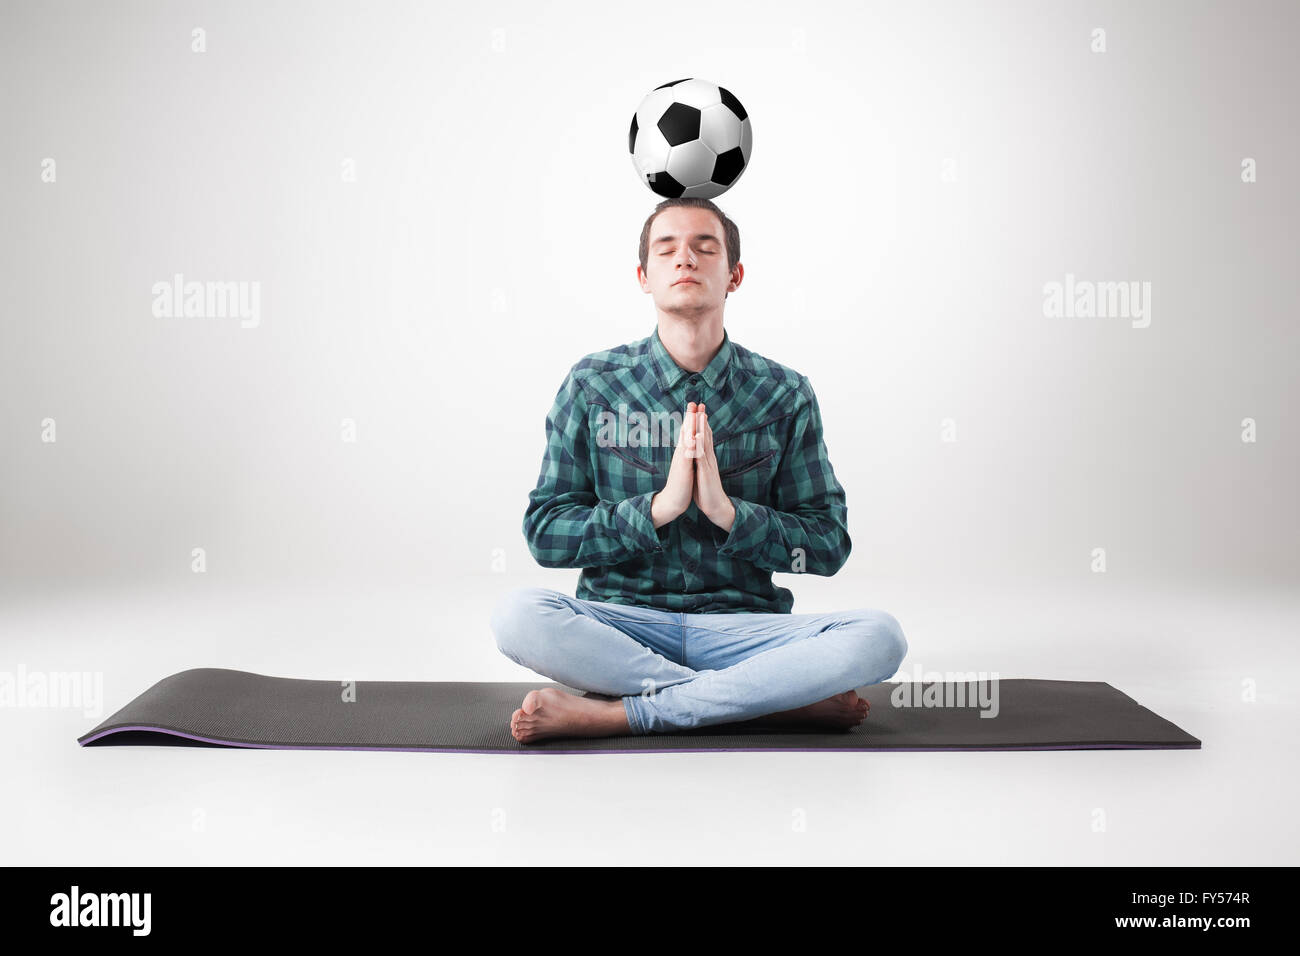 Portrait Of Young Man Practicing Yoga With Football Ball